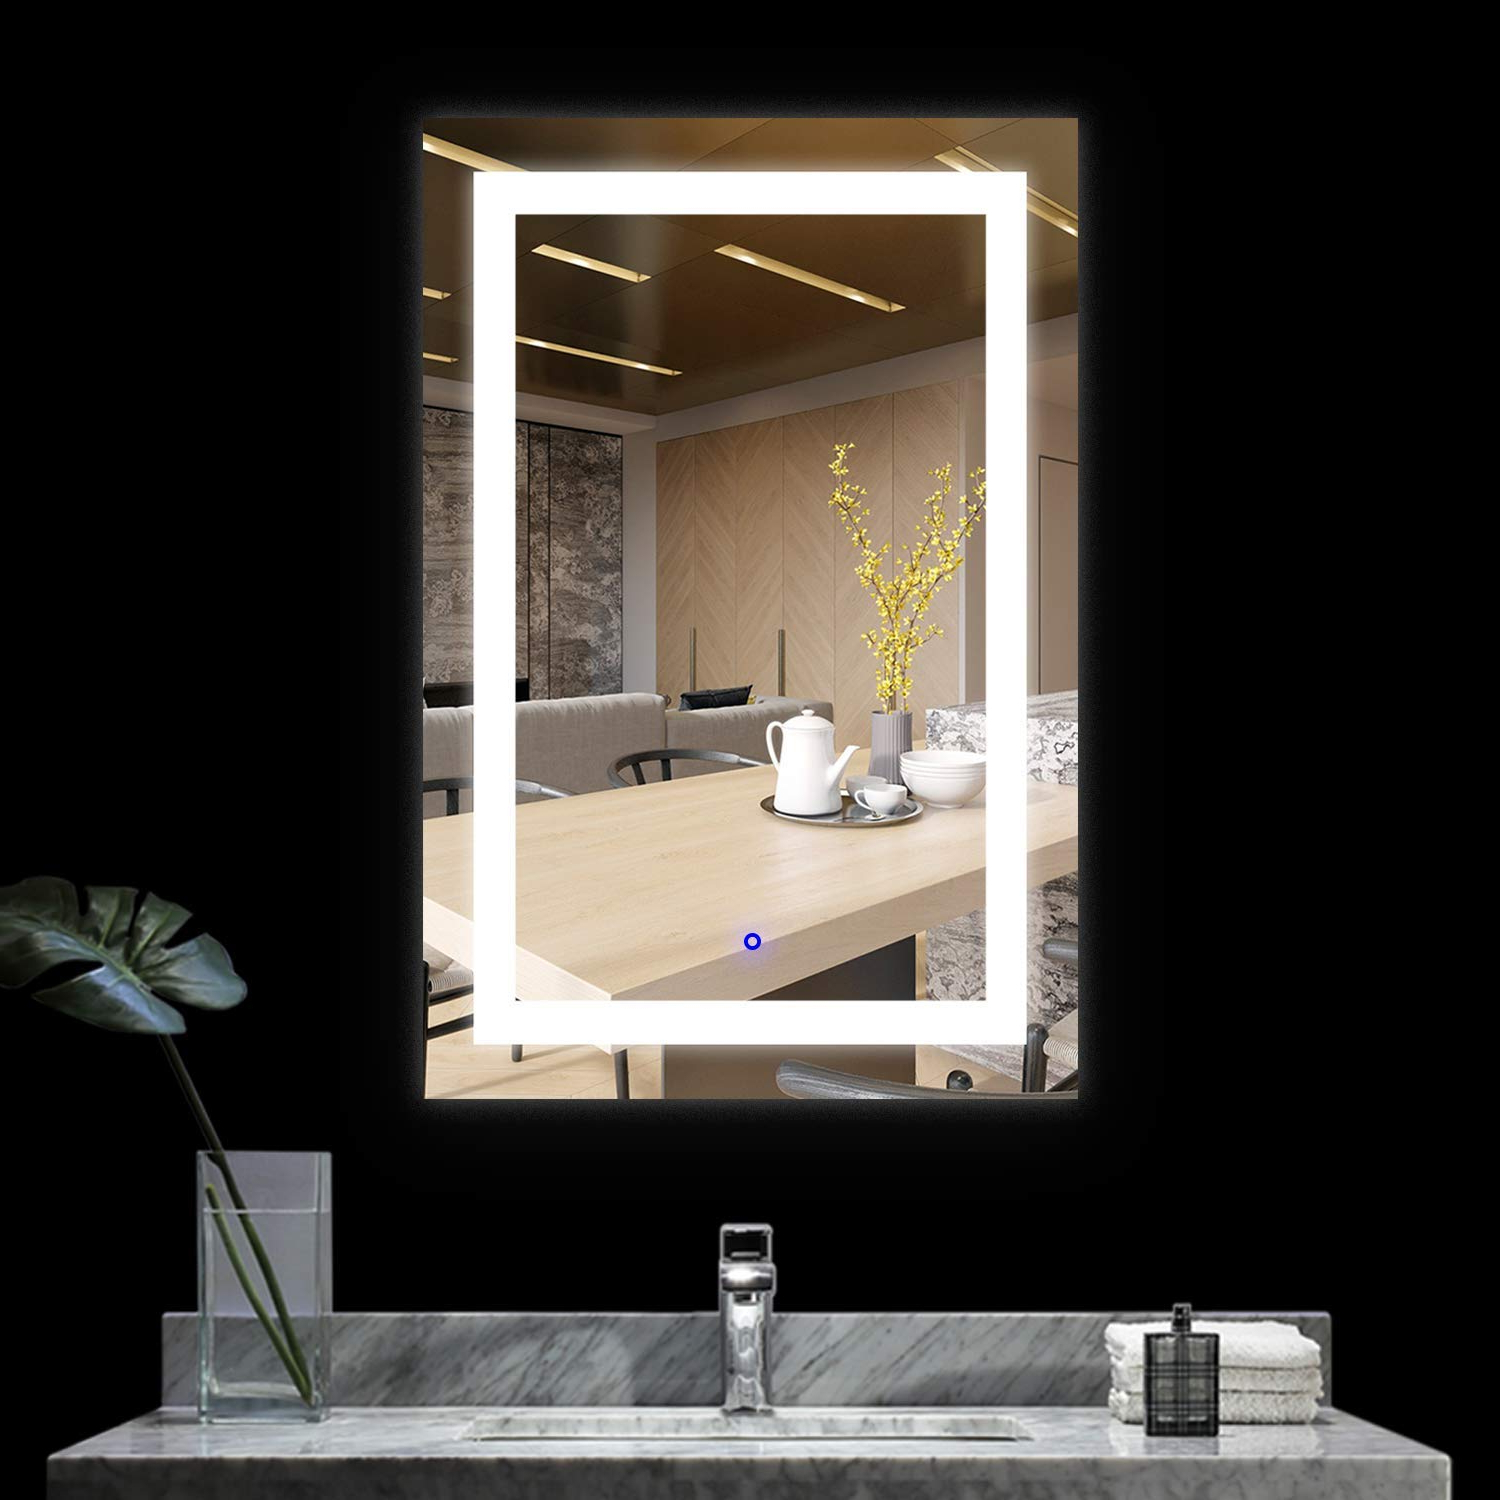 Most Current Infinite Reflections Led Bathroom Makeup Vanity Mirror With Lights Wall Mounted Backlit Mirror, Bathroom Lighted Mirror 18 X 24 Inch With Regard To Reflection Wall Mirrors (View 10 of 20)